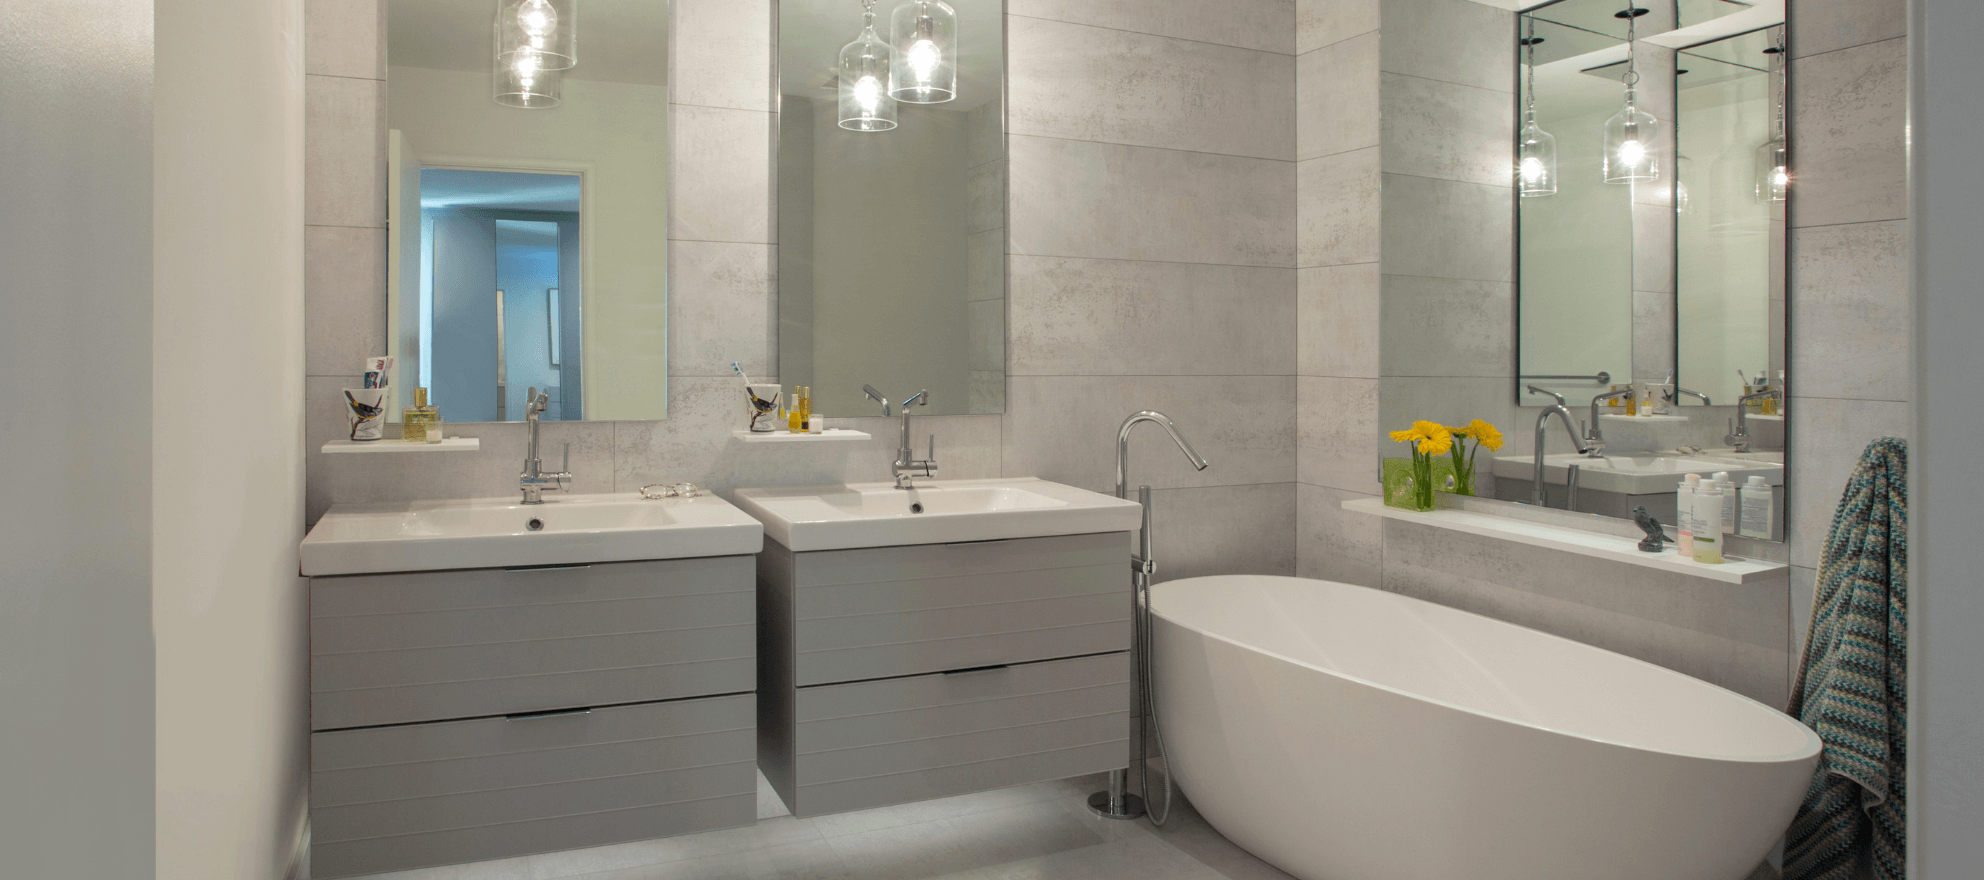 Give The Stunning Look With Bathroom Trends 2019 Bathroom Trends Rustic Bathroom Vanities Bathroom Wallpaper